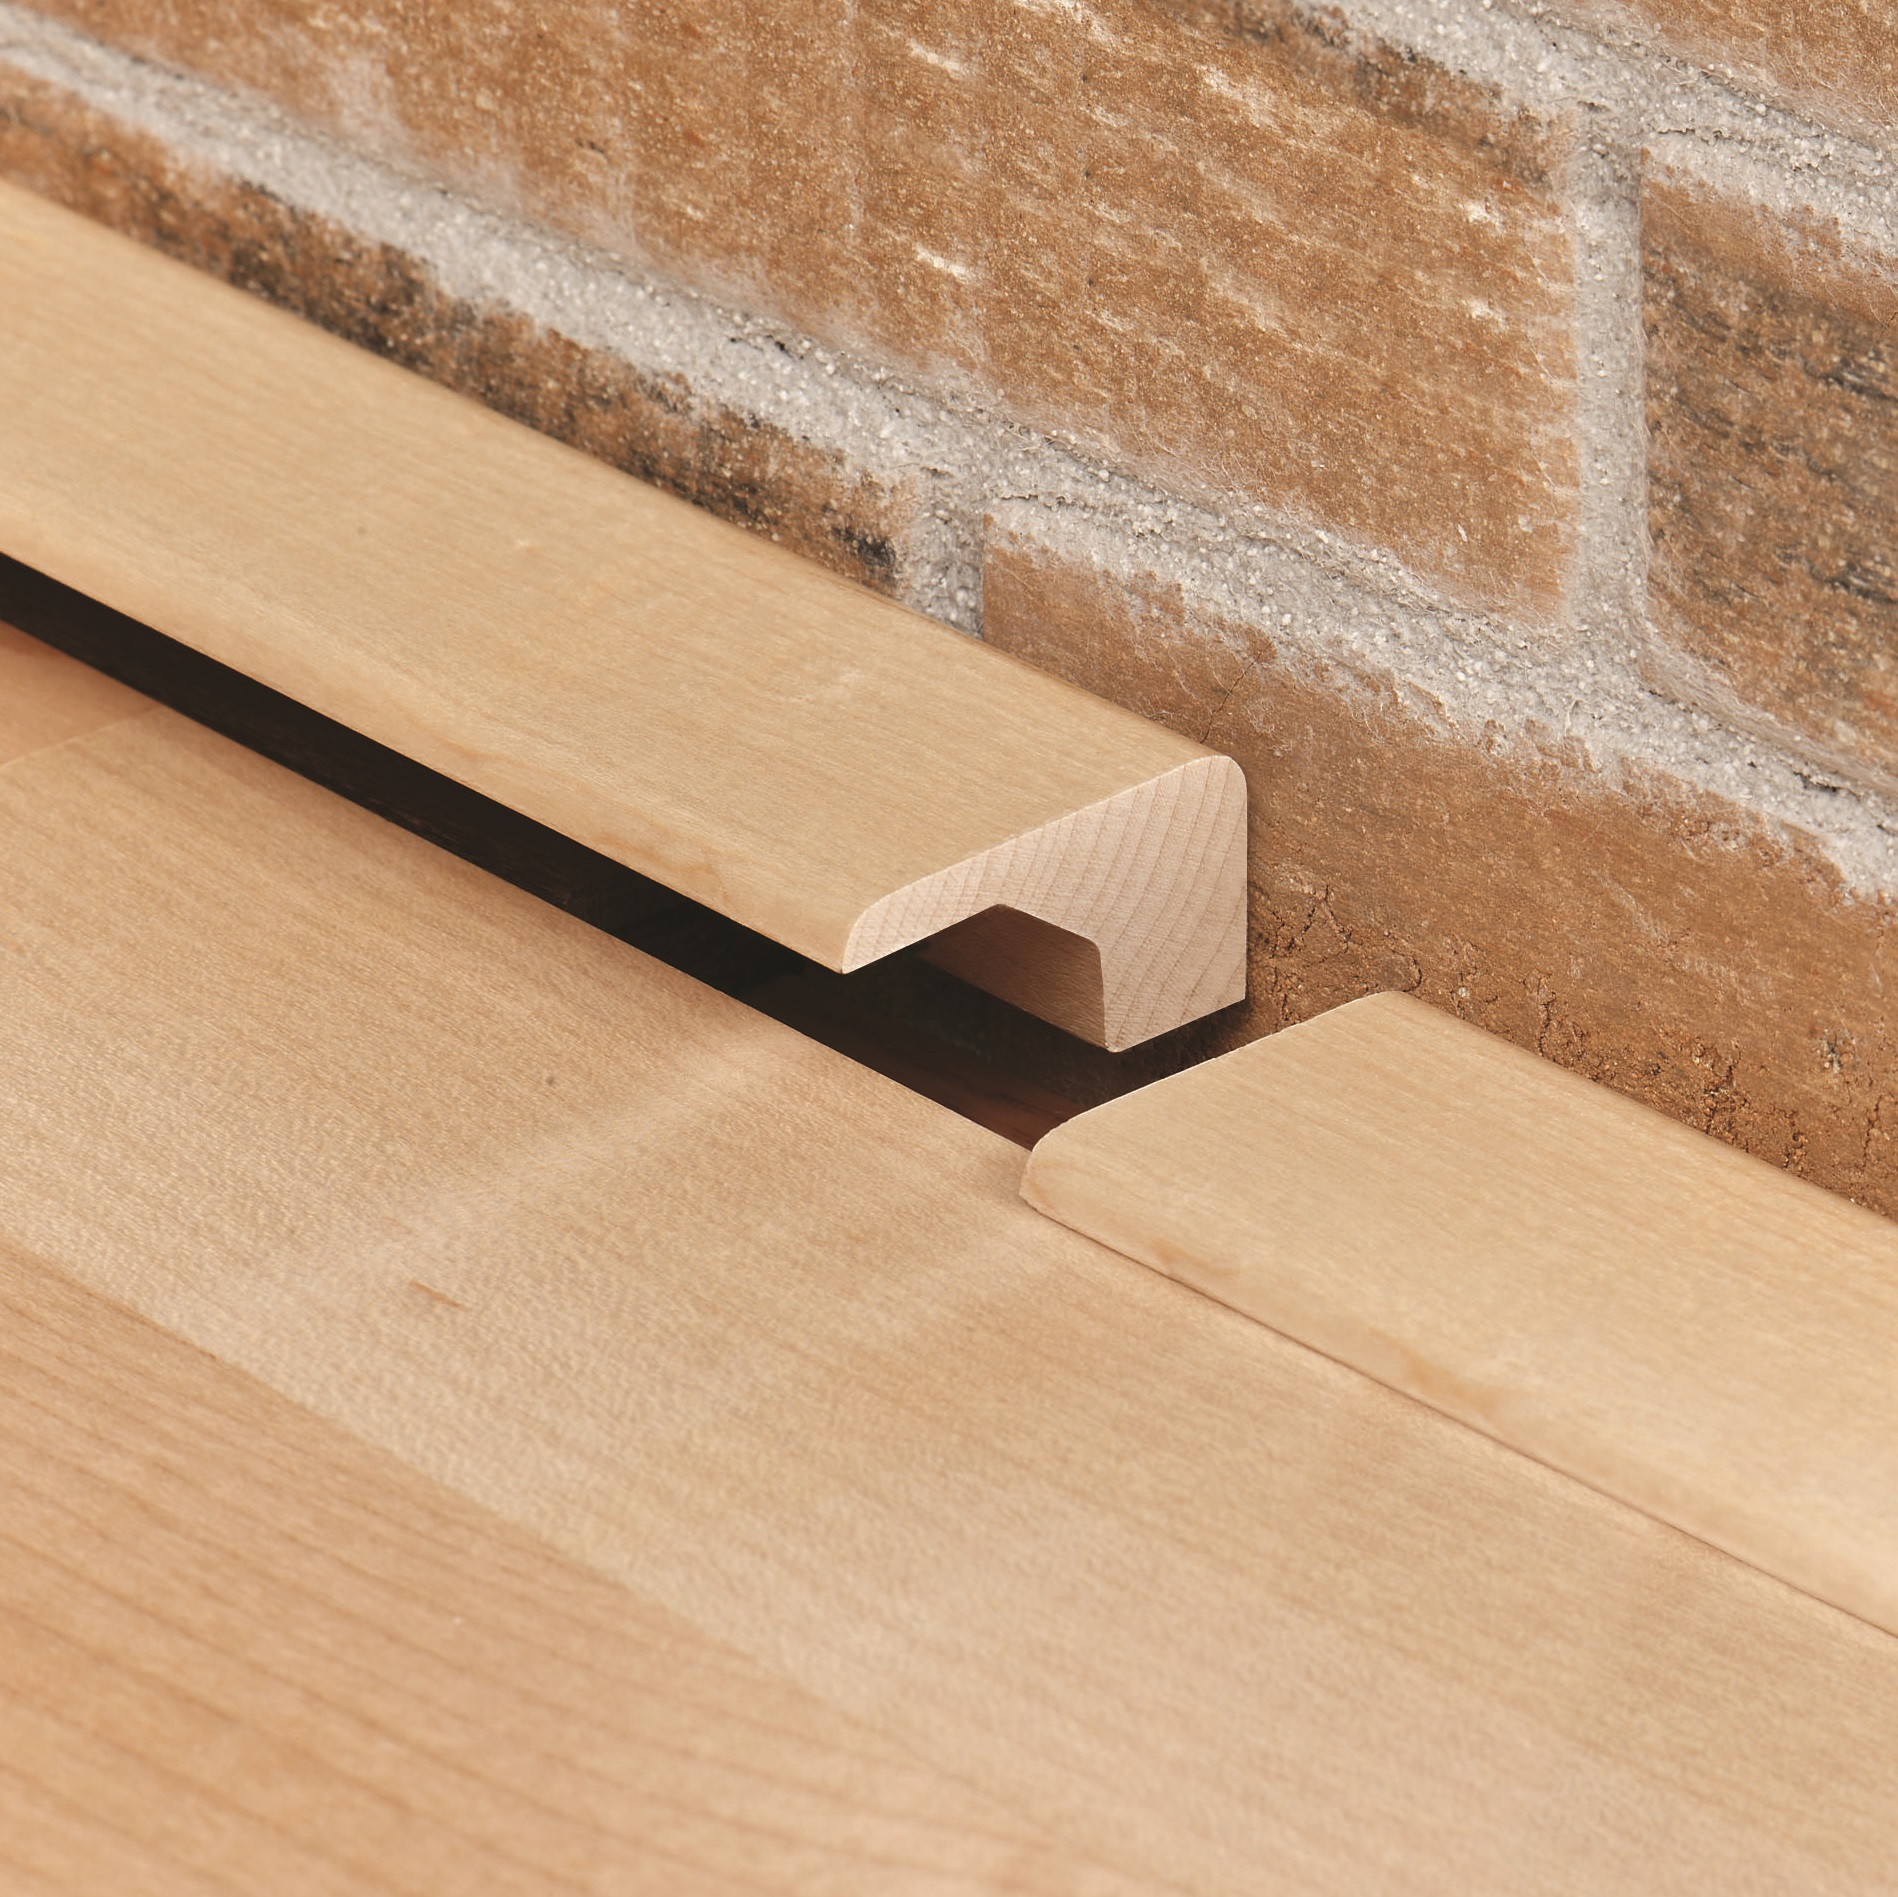 Square Nose Wood Floor End Cap Transition Molding For